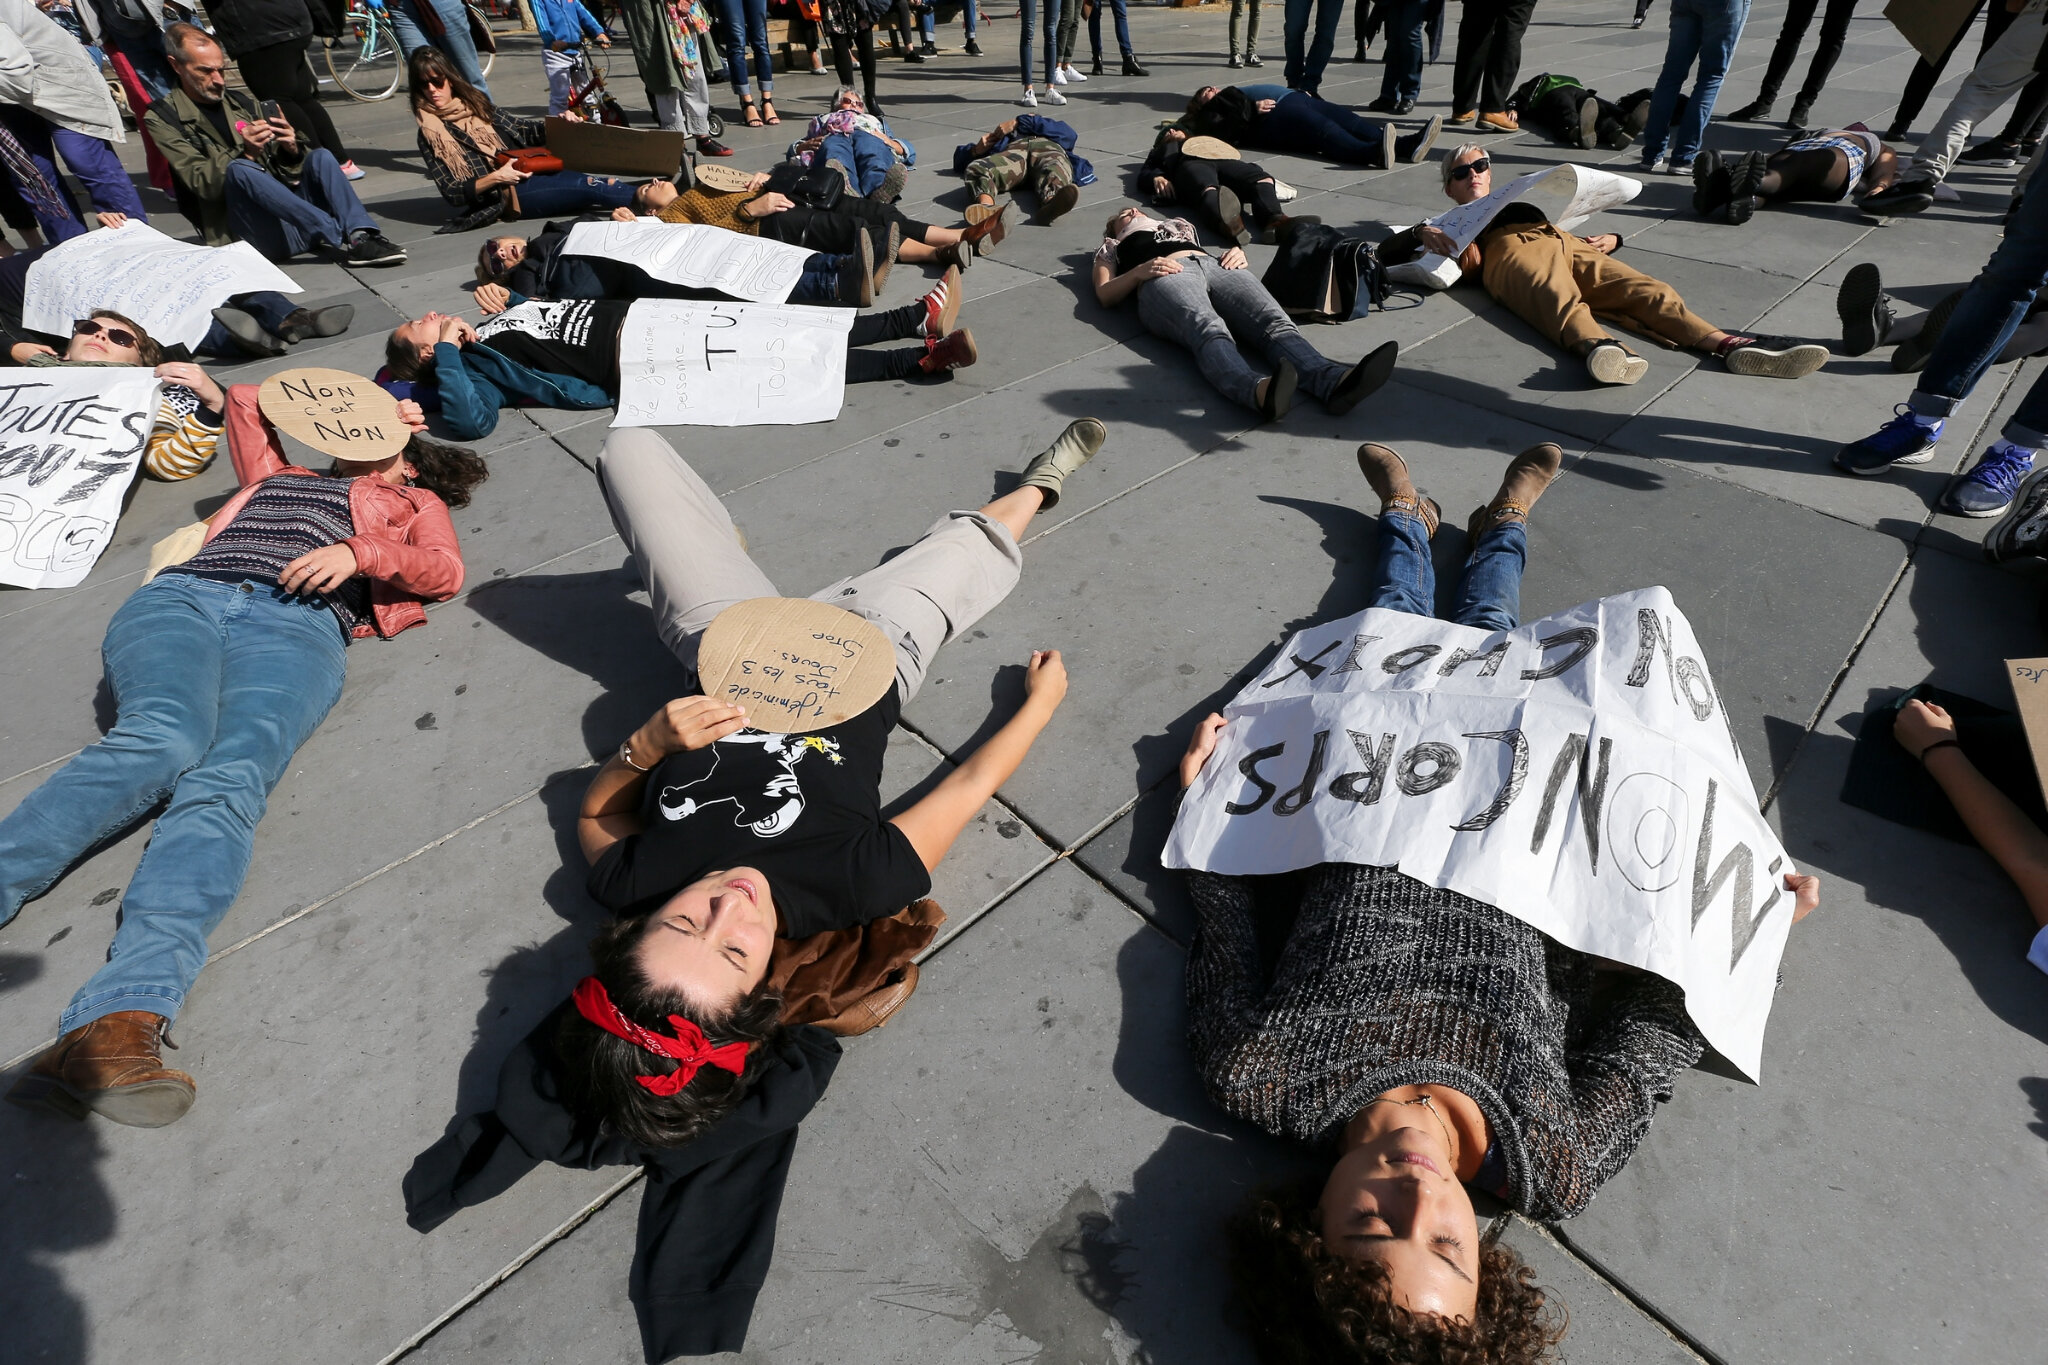 Die-In à Paris pour #MeToo. © Michel Stoupak. Sam 29.09.2018, 13h36m09.